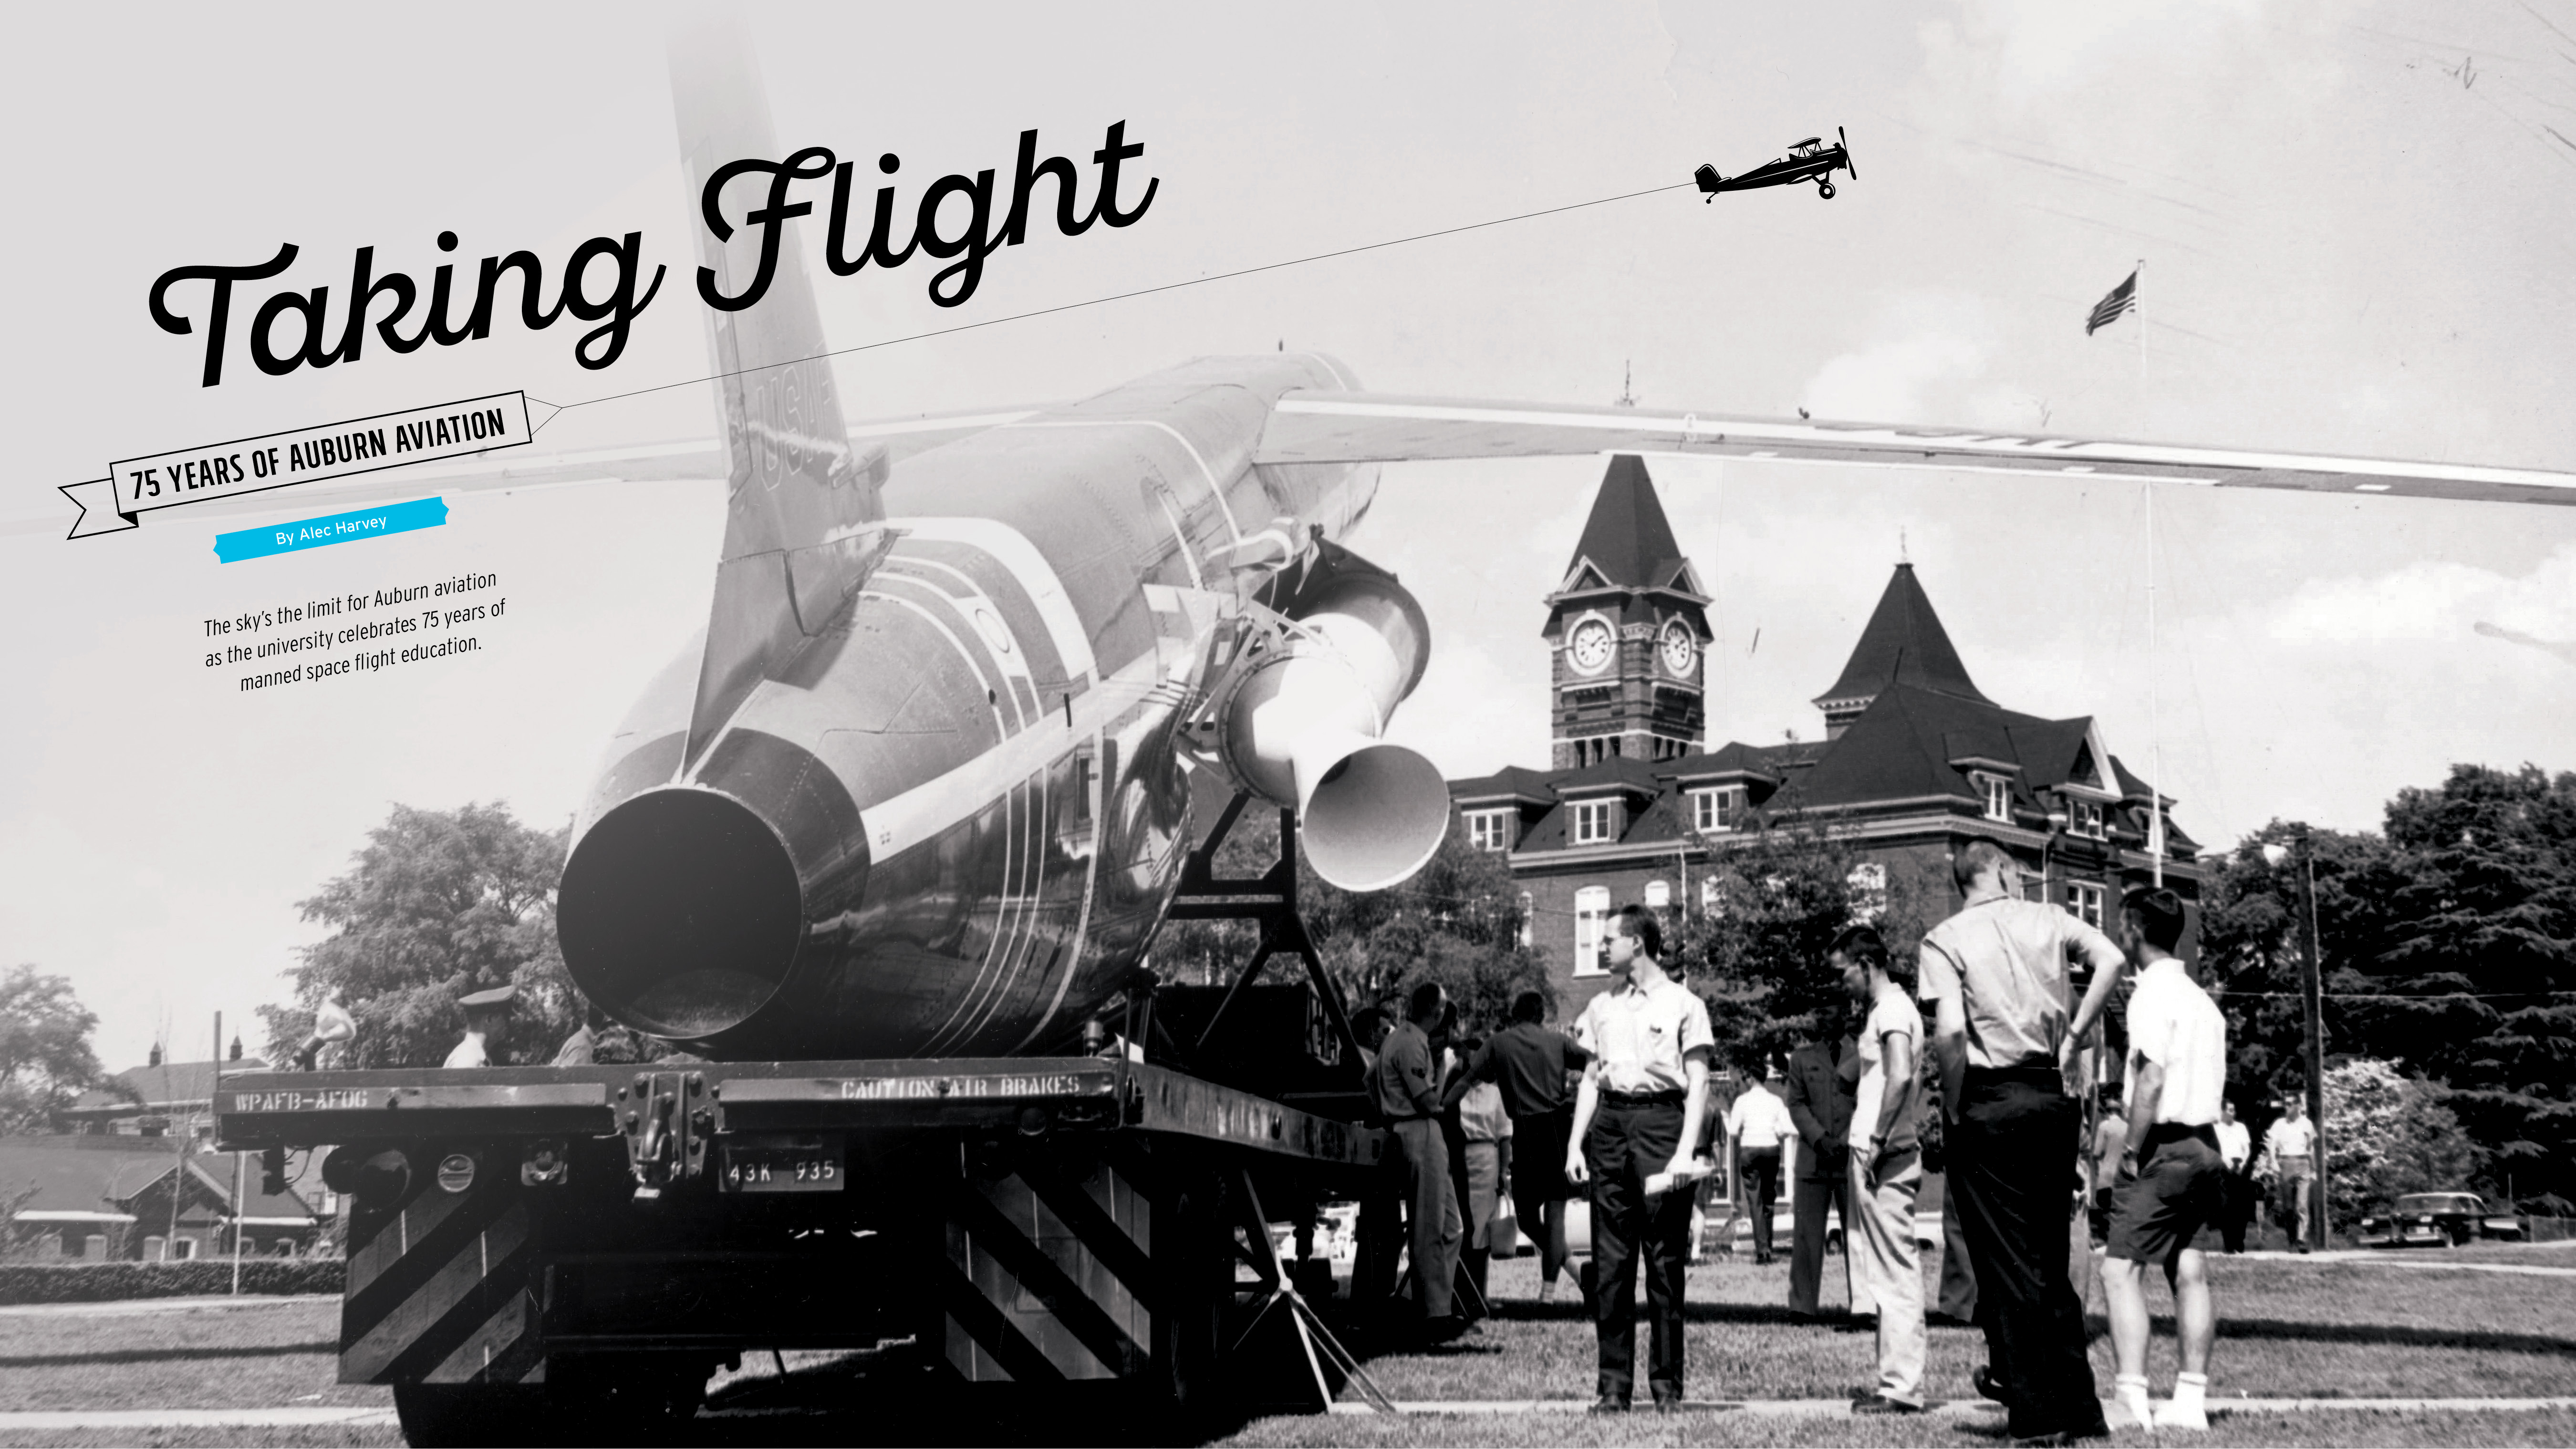 Taking Flight 75 Years of Auburn Aviation | Auburn Alumni